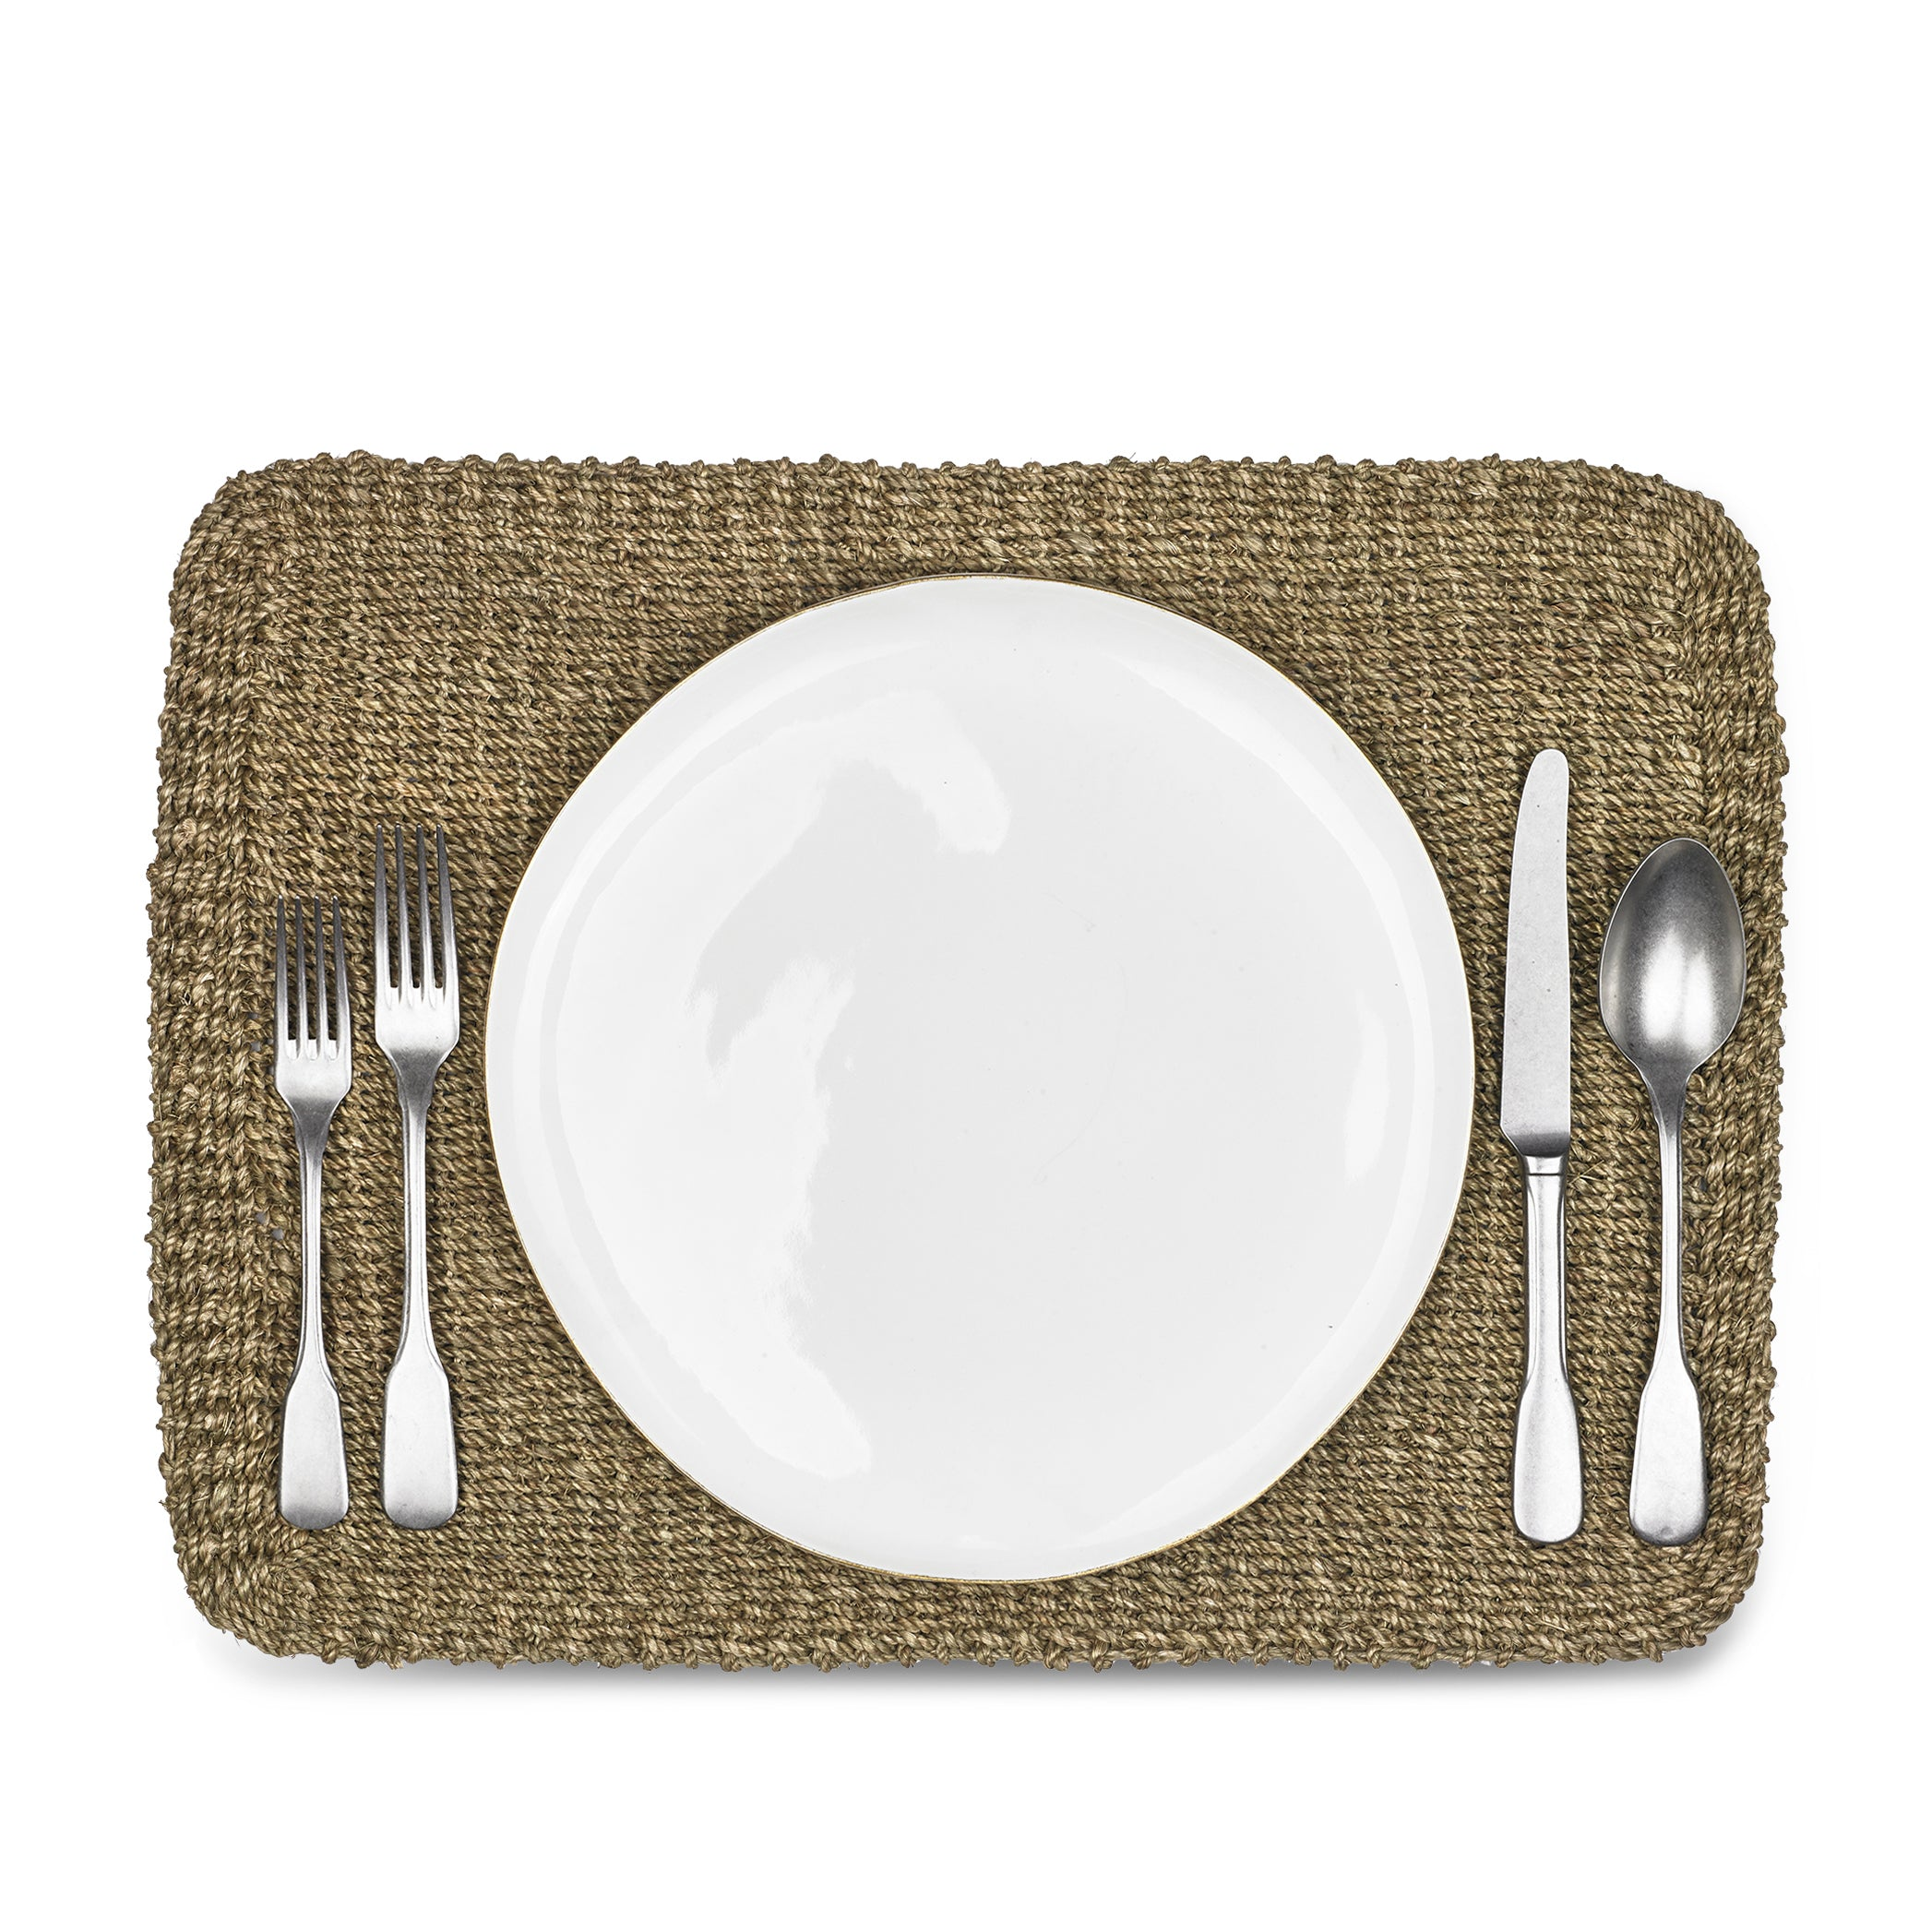 Abaca Woven Rectangular Placemat in Sage